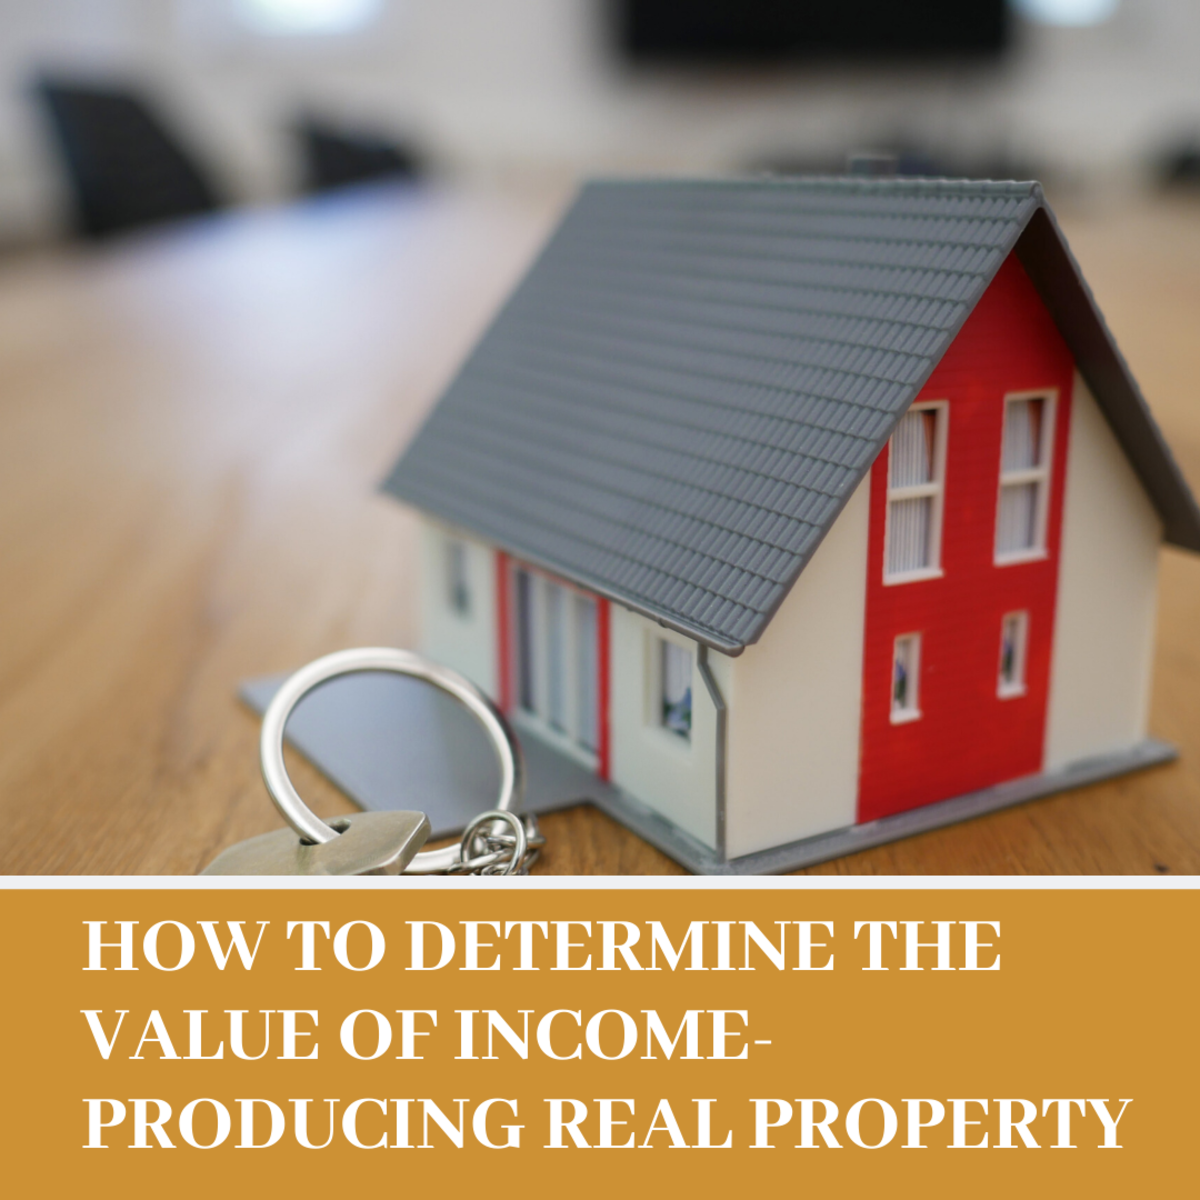 Determining the Value of Income-Producing Real Property